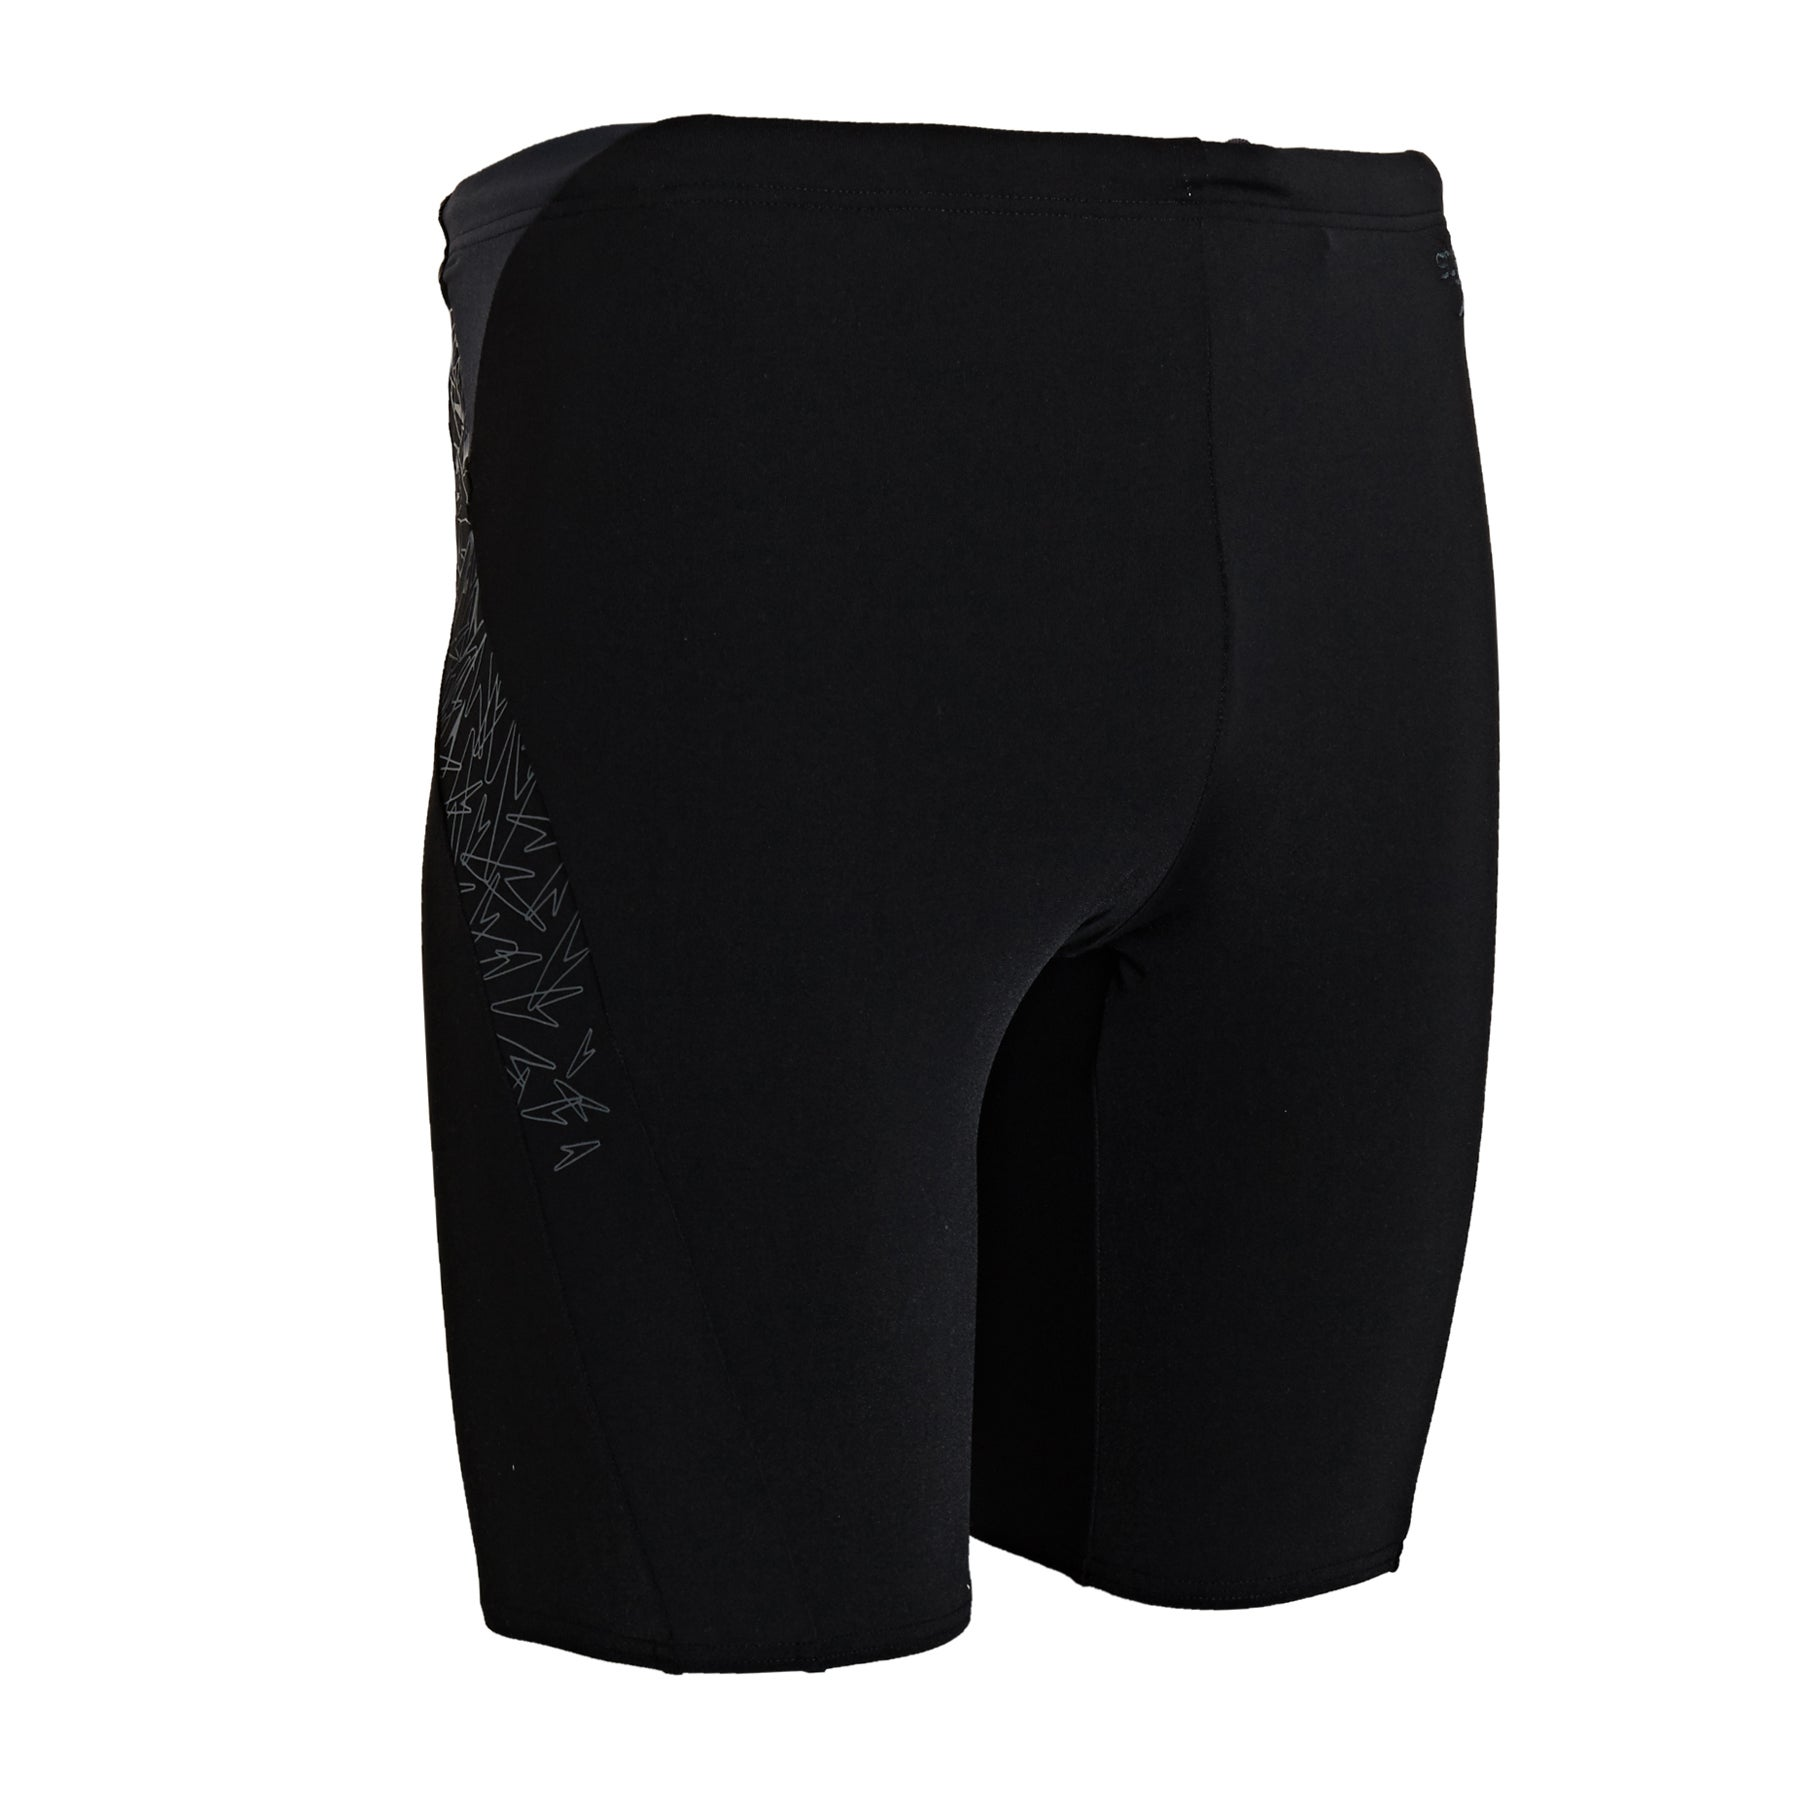 Speedo Boom Splice Jammer Swim Shorts - Black Oxid Grey